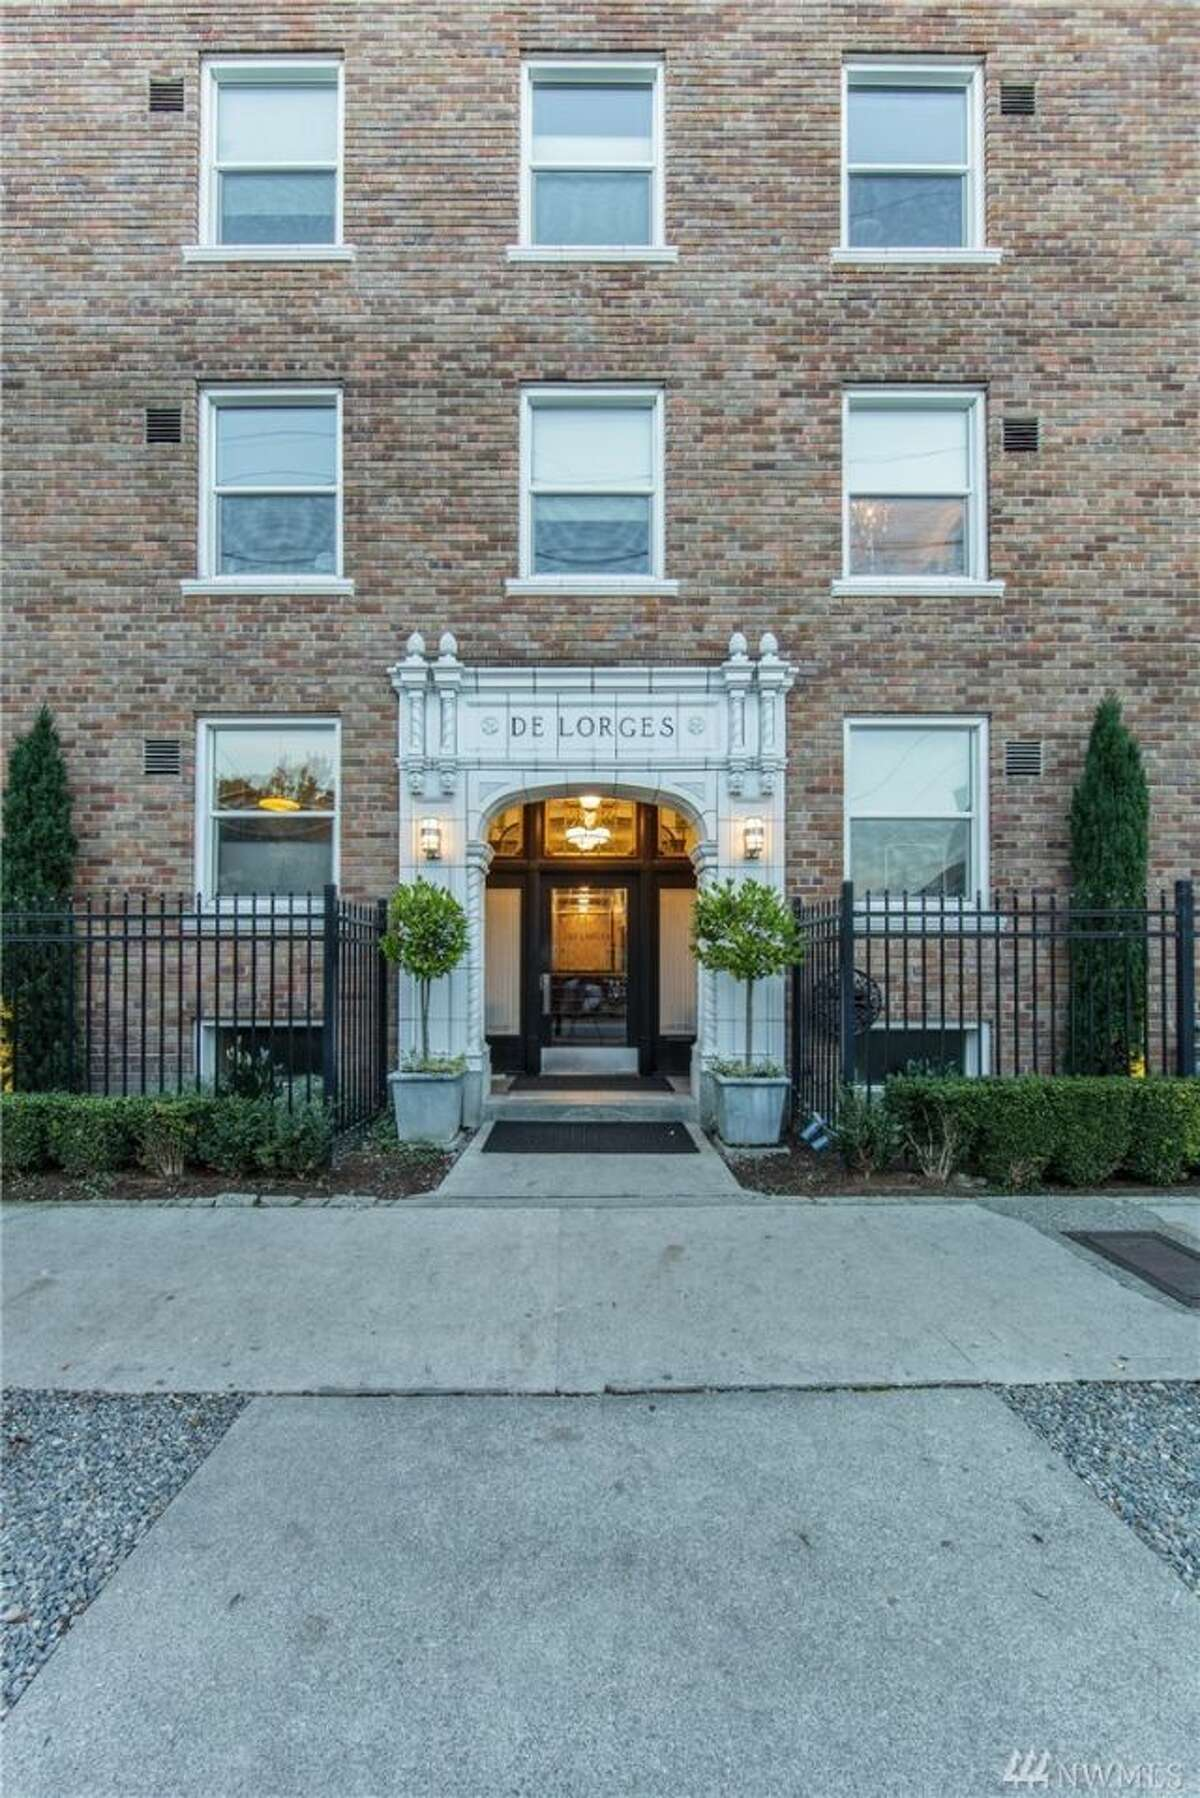 The first condo, #501 in 325 Harvard Ave. E., is listed for $255,000. The 477 square-foot unit is in a vintage building constructed in 1928. It features 10-foot-high ceilings and rounded arch doorways. You can see the full listing here.